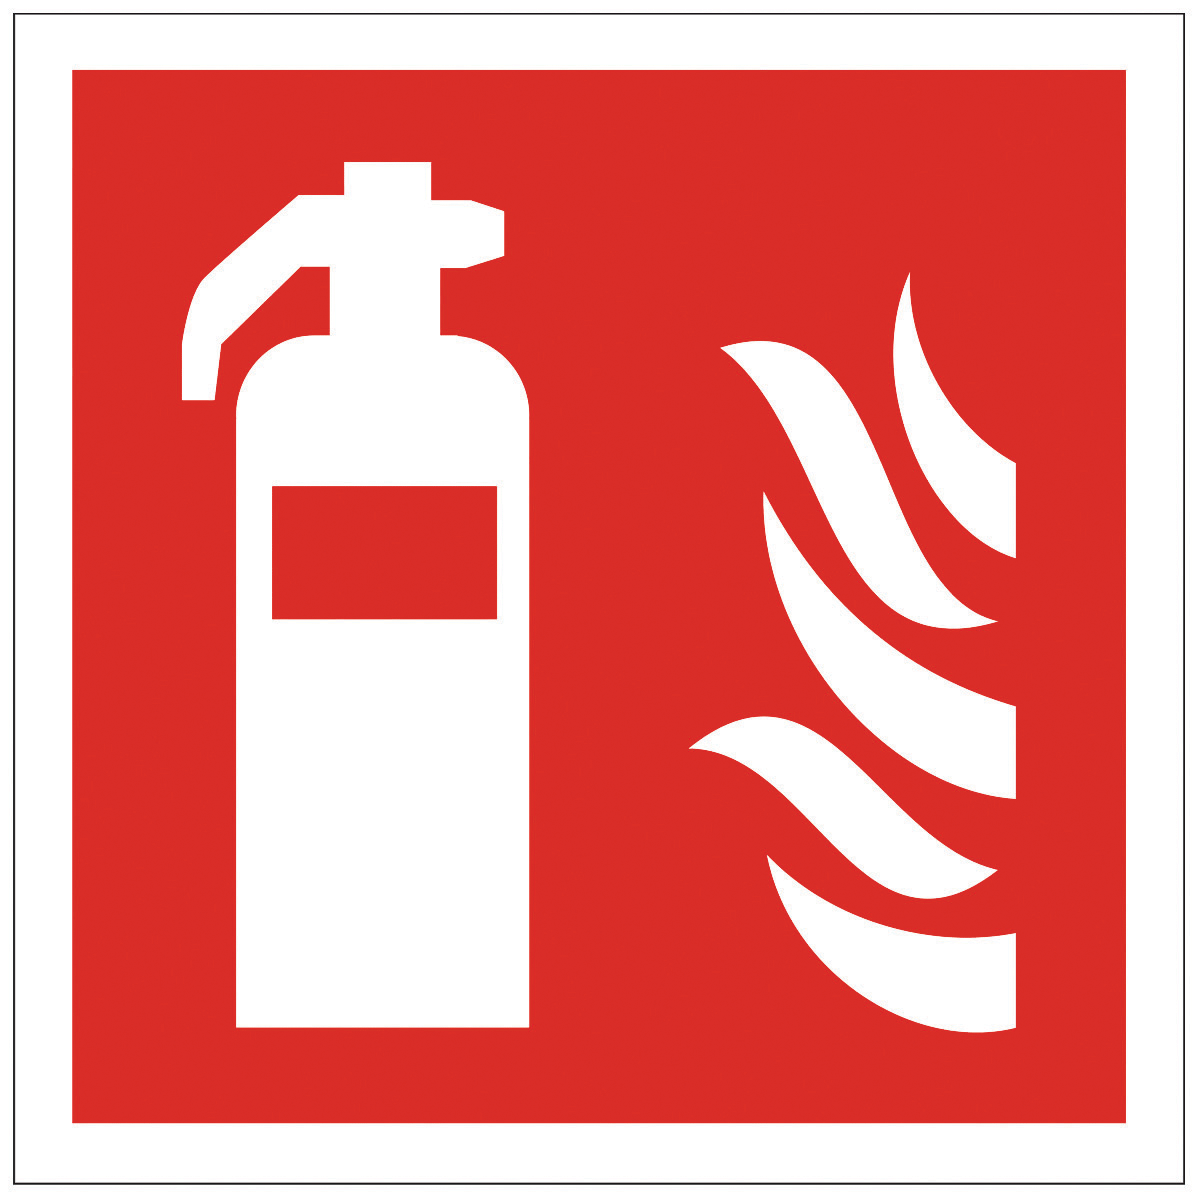 Fire Safety Signs Amp Symbols